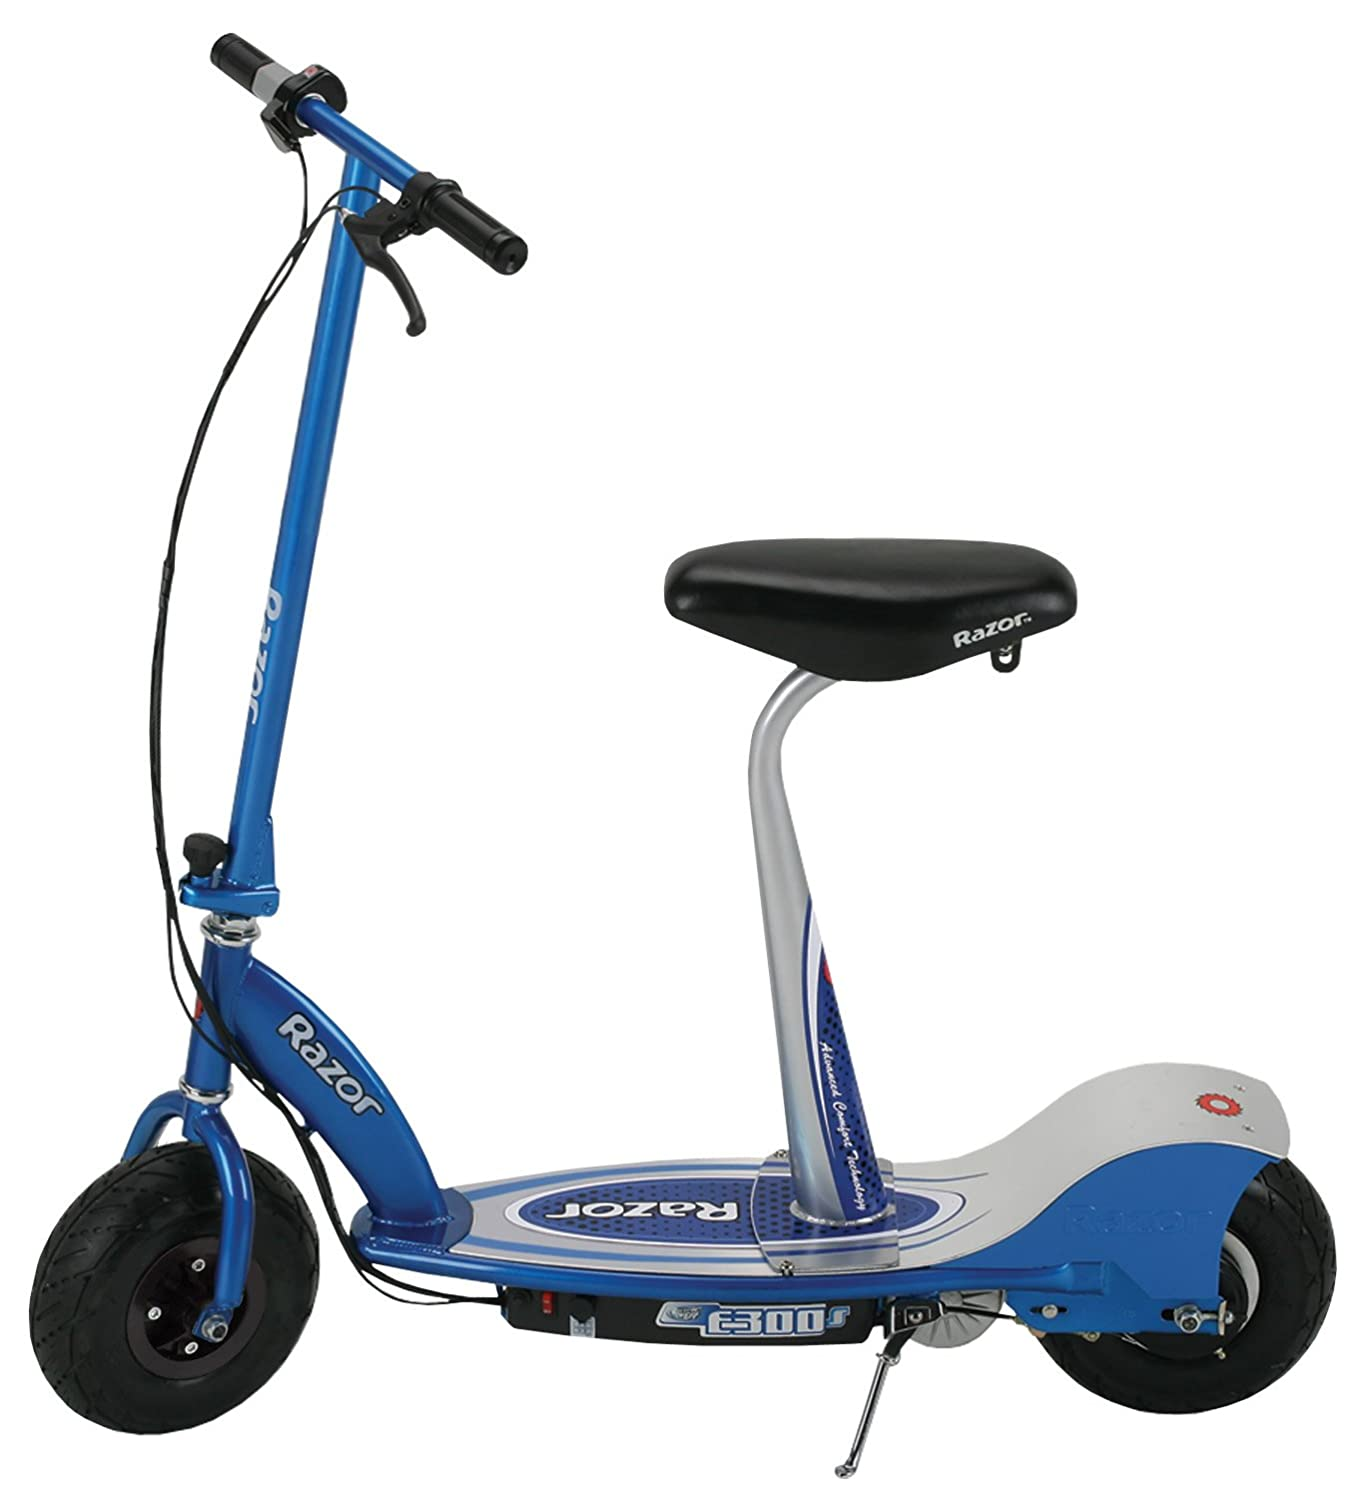 Razor e300s seated electric scooter for Motorized scooter for kids